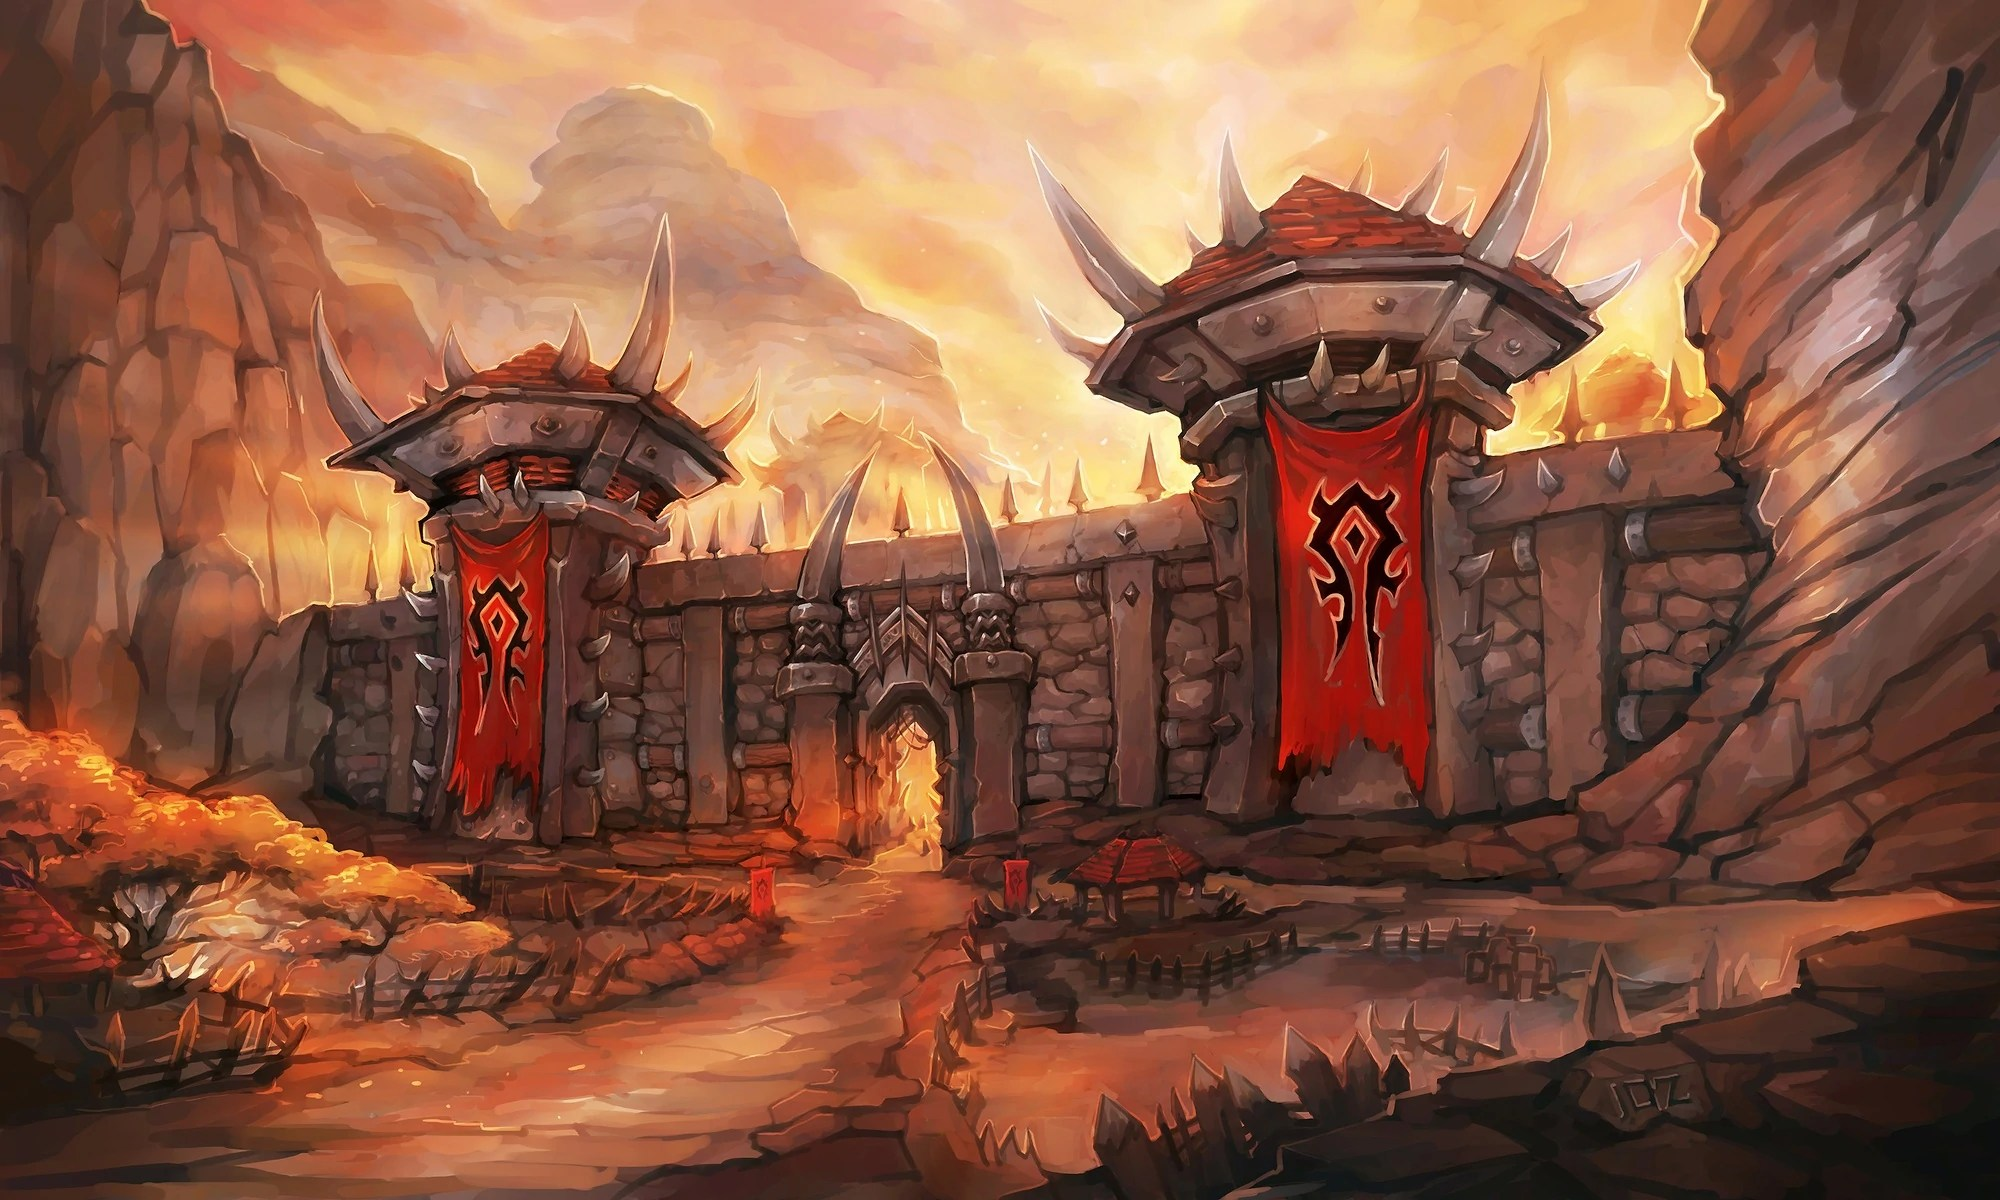 Falling Down A Portal Wallpaper Orgrimmar Wowpedia Your Wiki Guide To The World Of